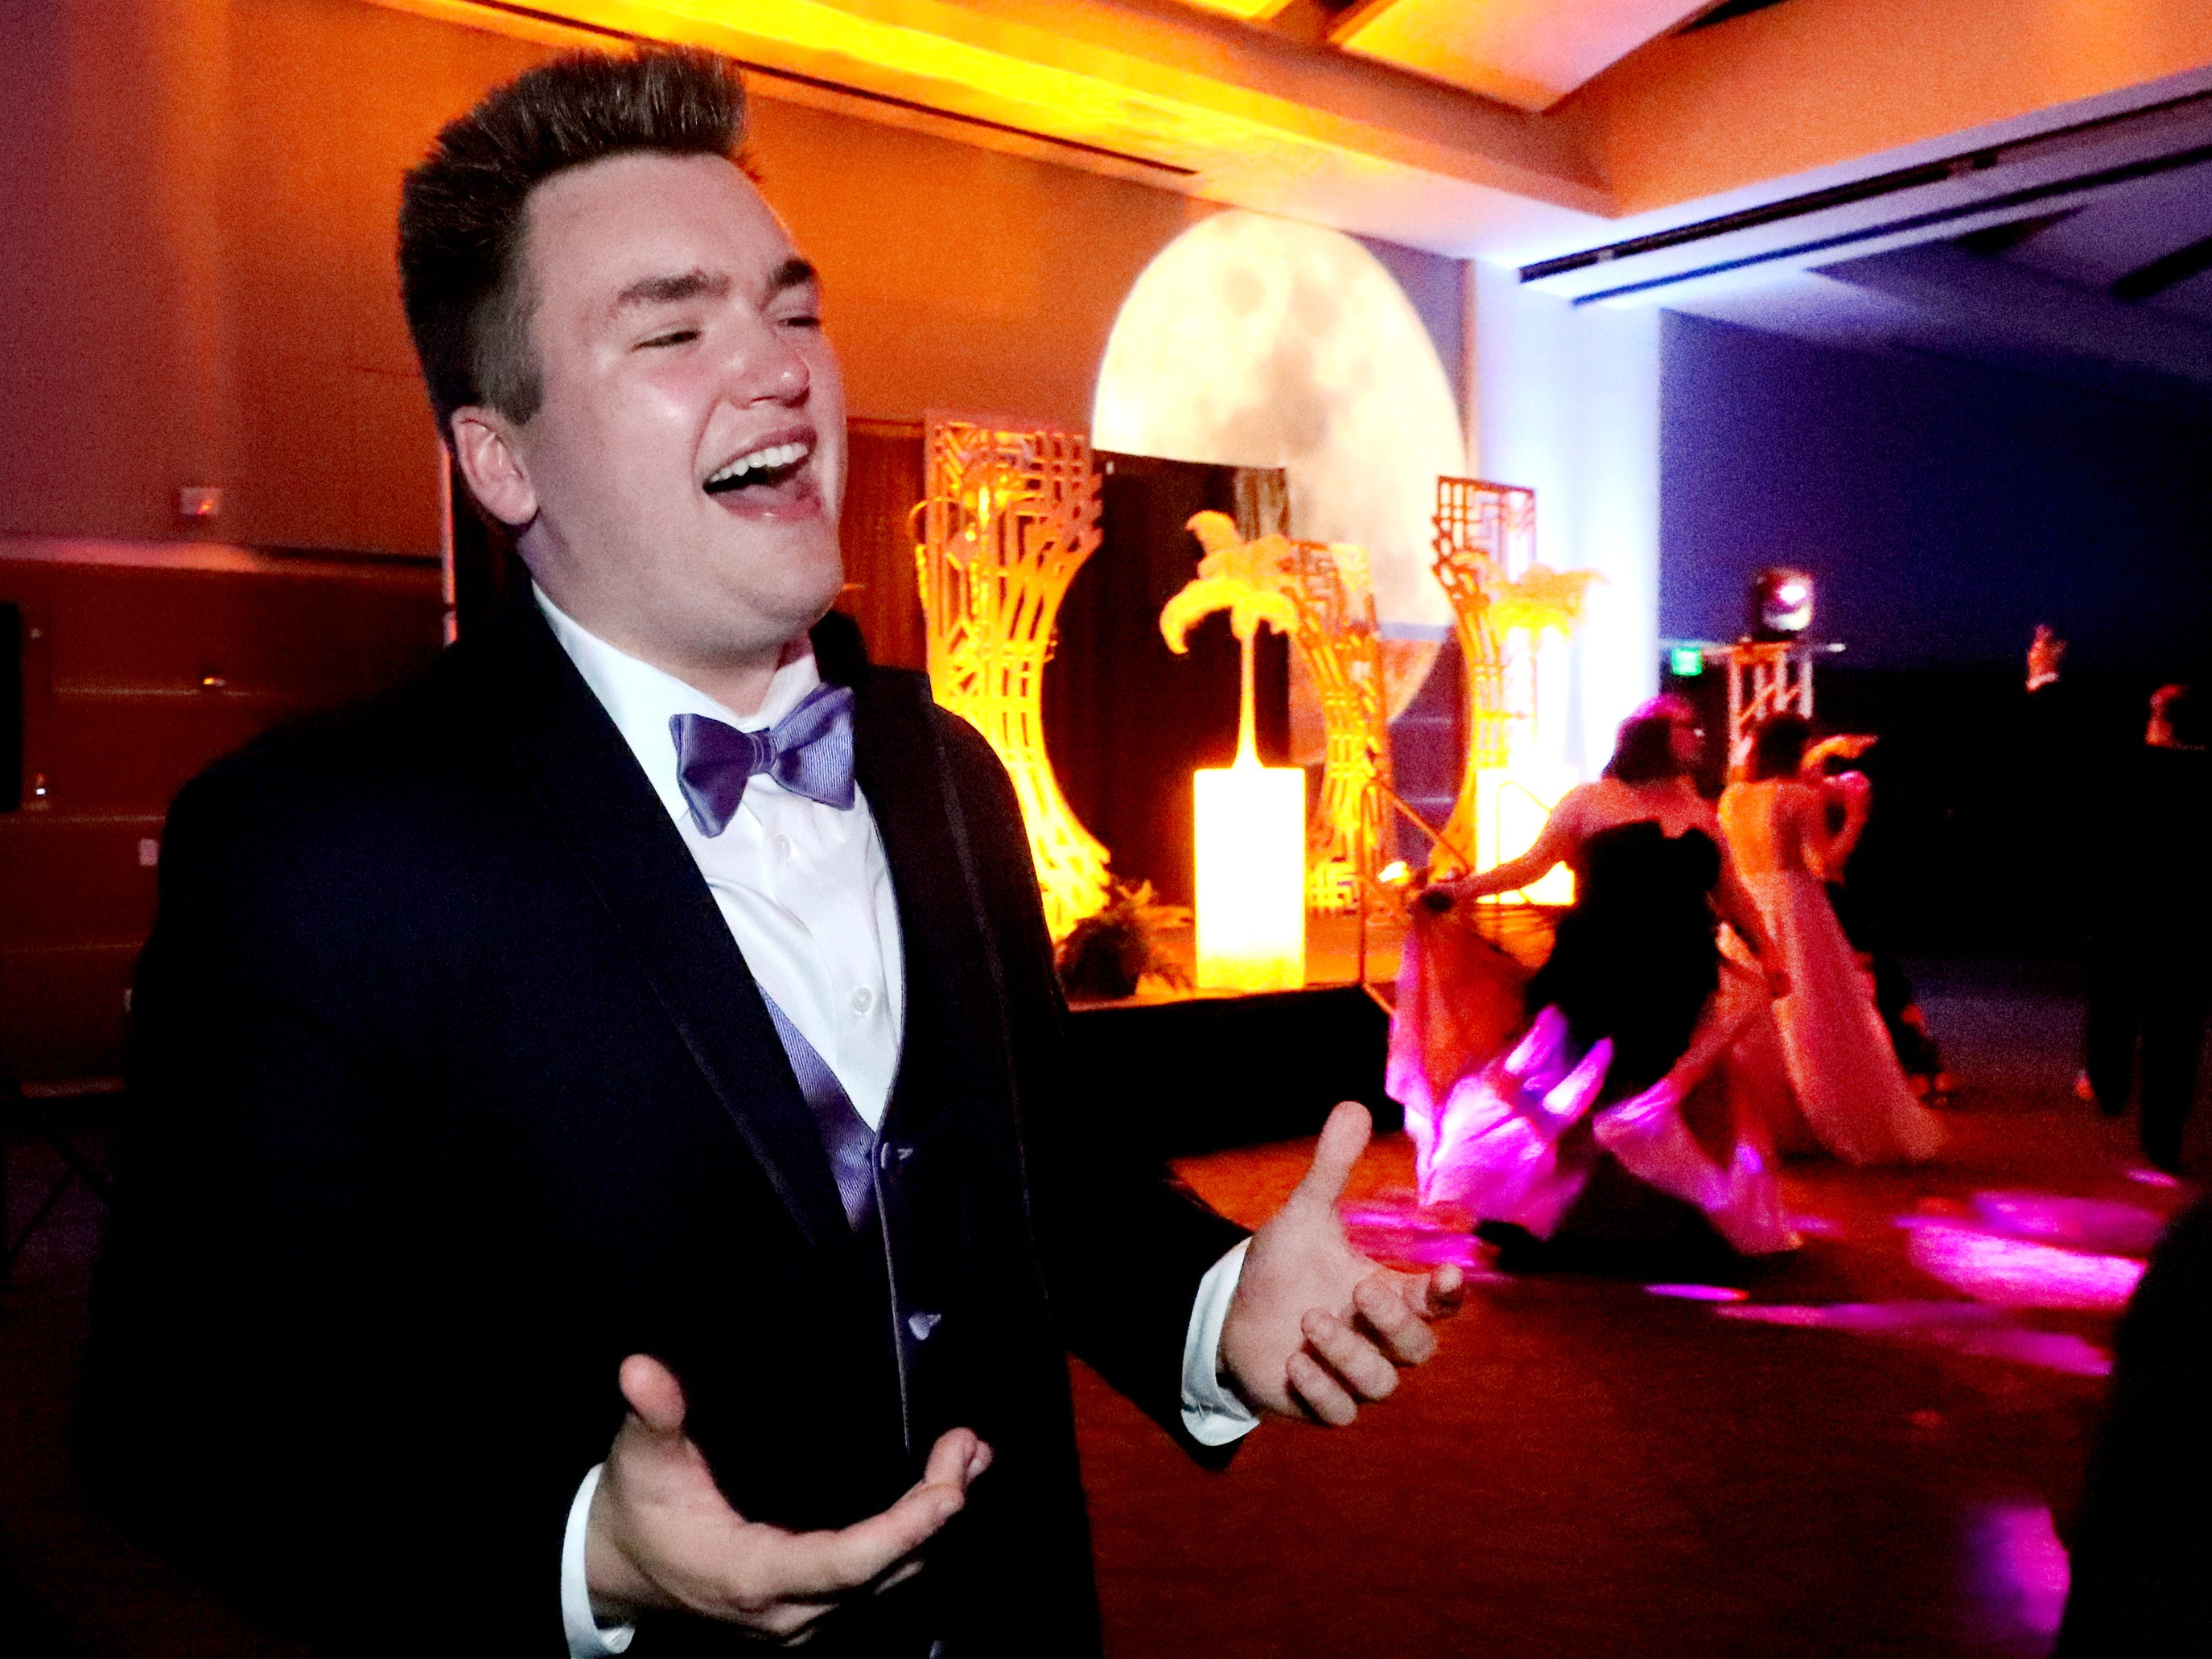 Caleb Strickland sings and dances to a Journey song at Blackman's prom on Friday April 12, 2019, at MTSU.